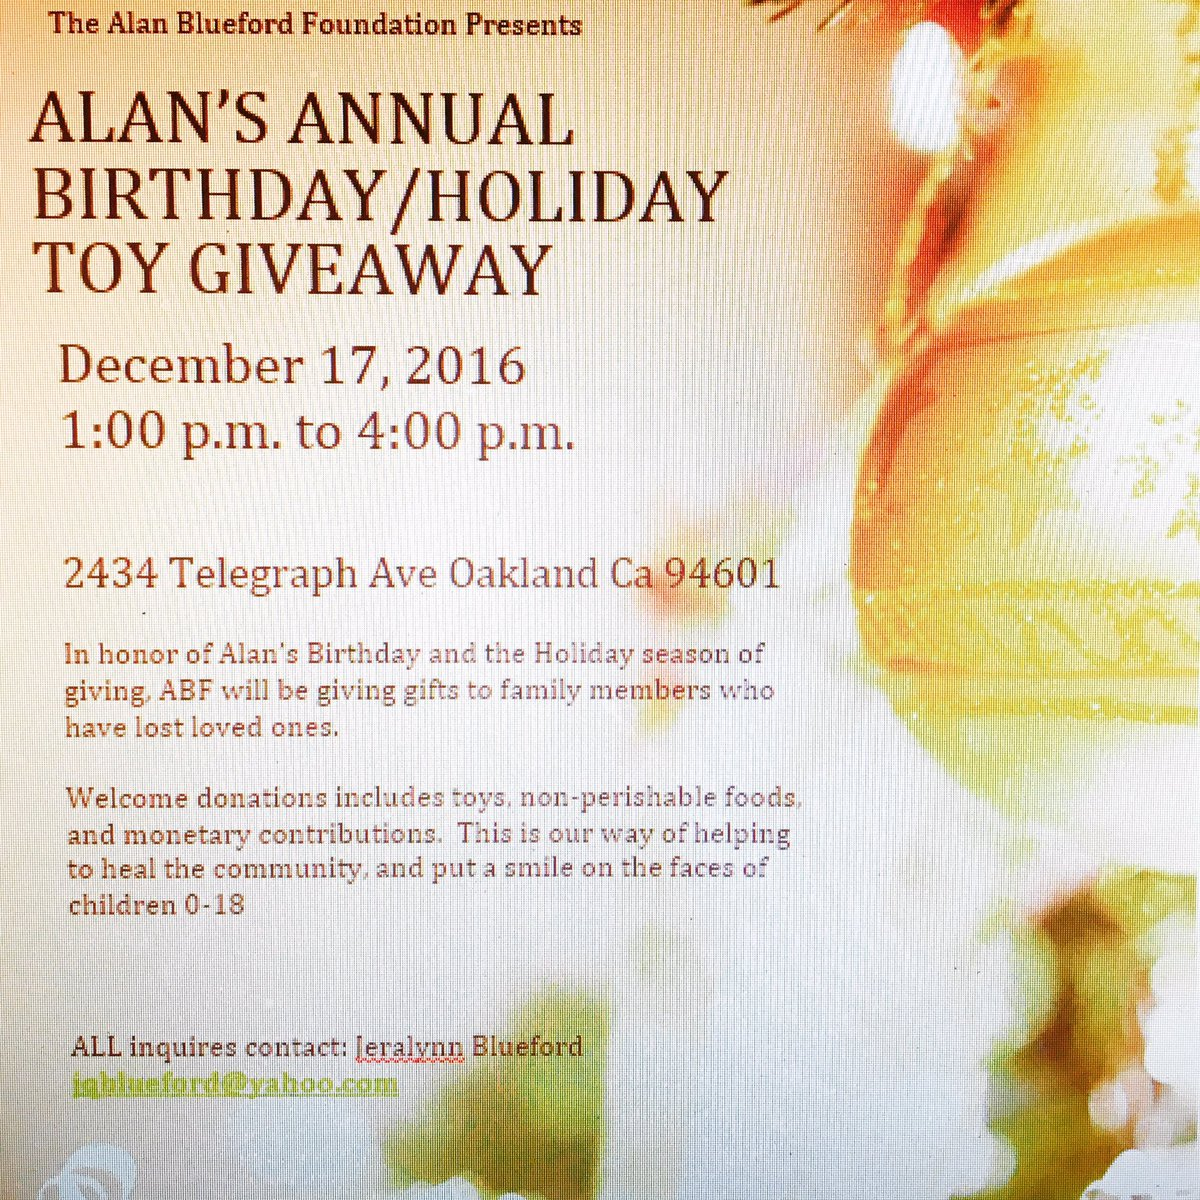 Alan Blueford Annual Birthday/Holiday Toy Giveaway @ Alan Blueford Center for Justice | Oakland | California | United States